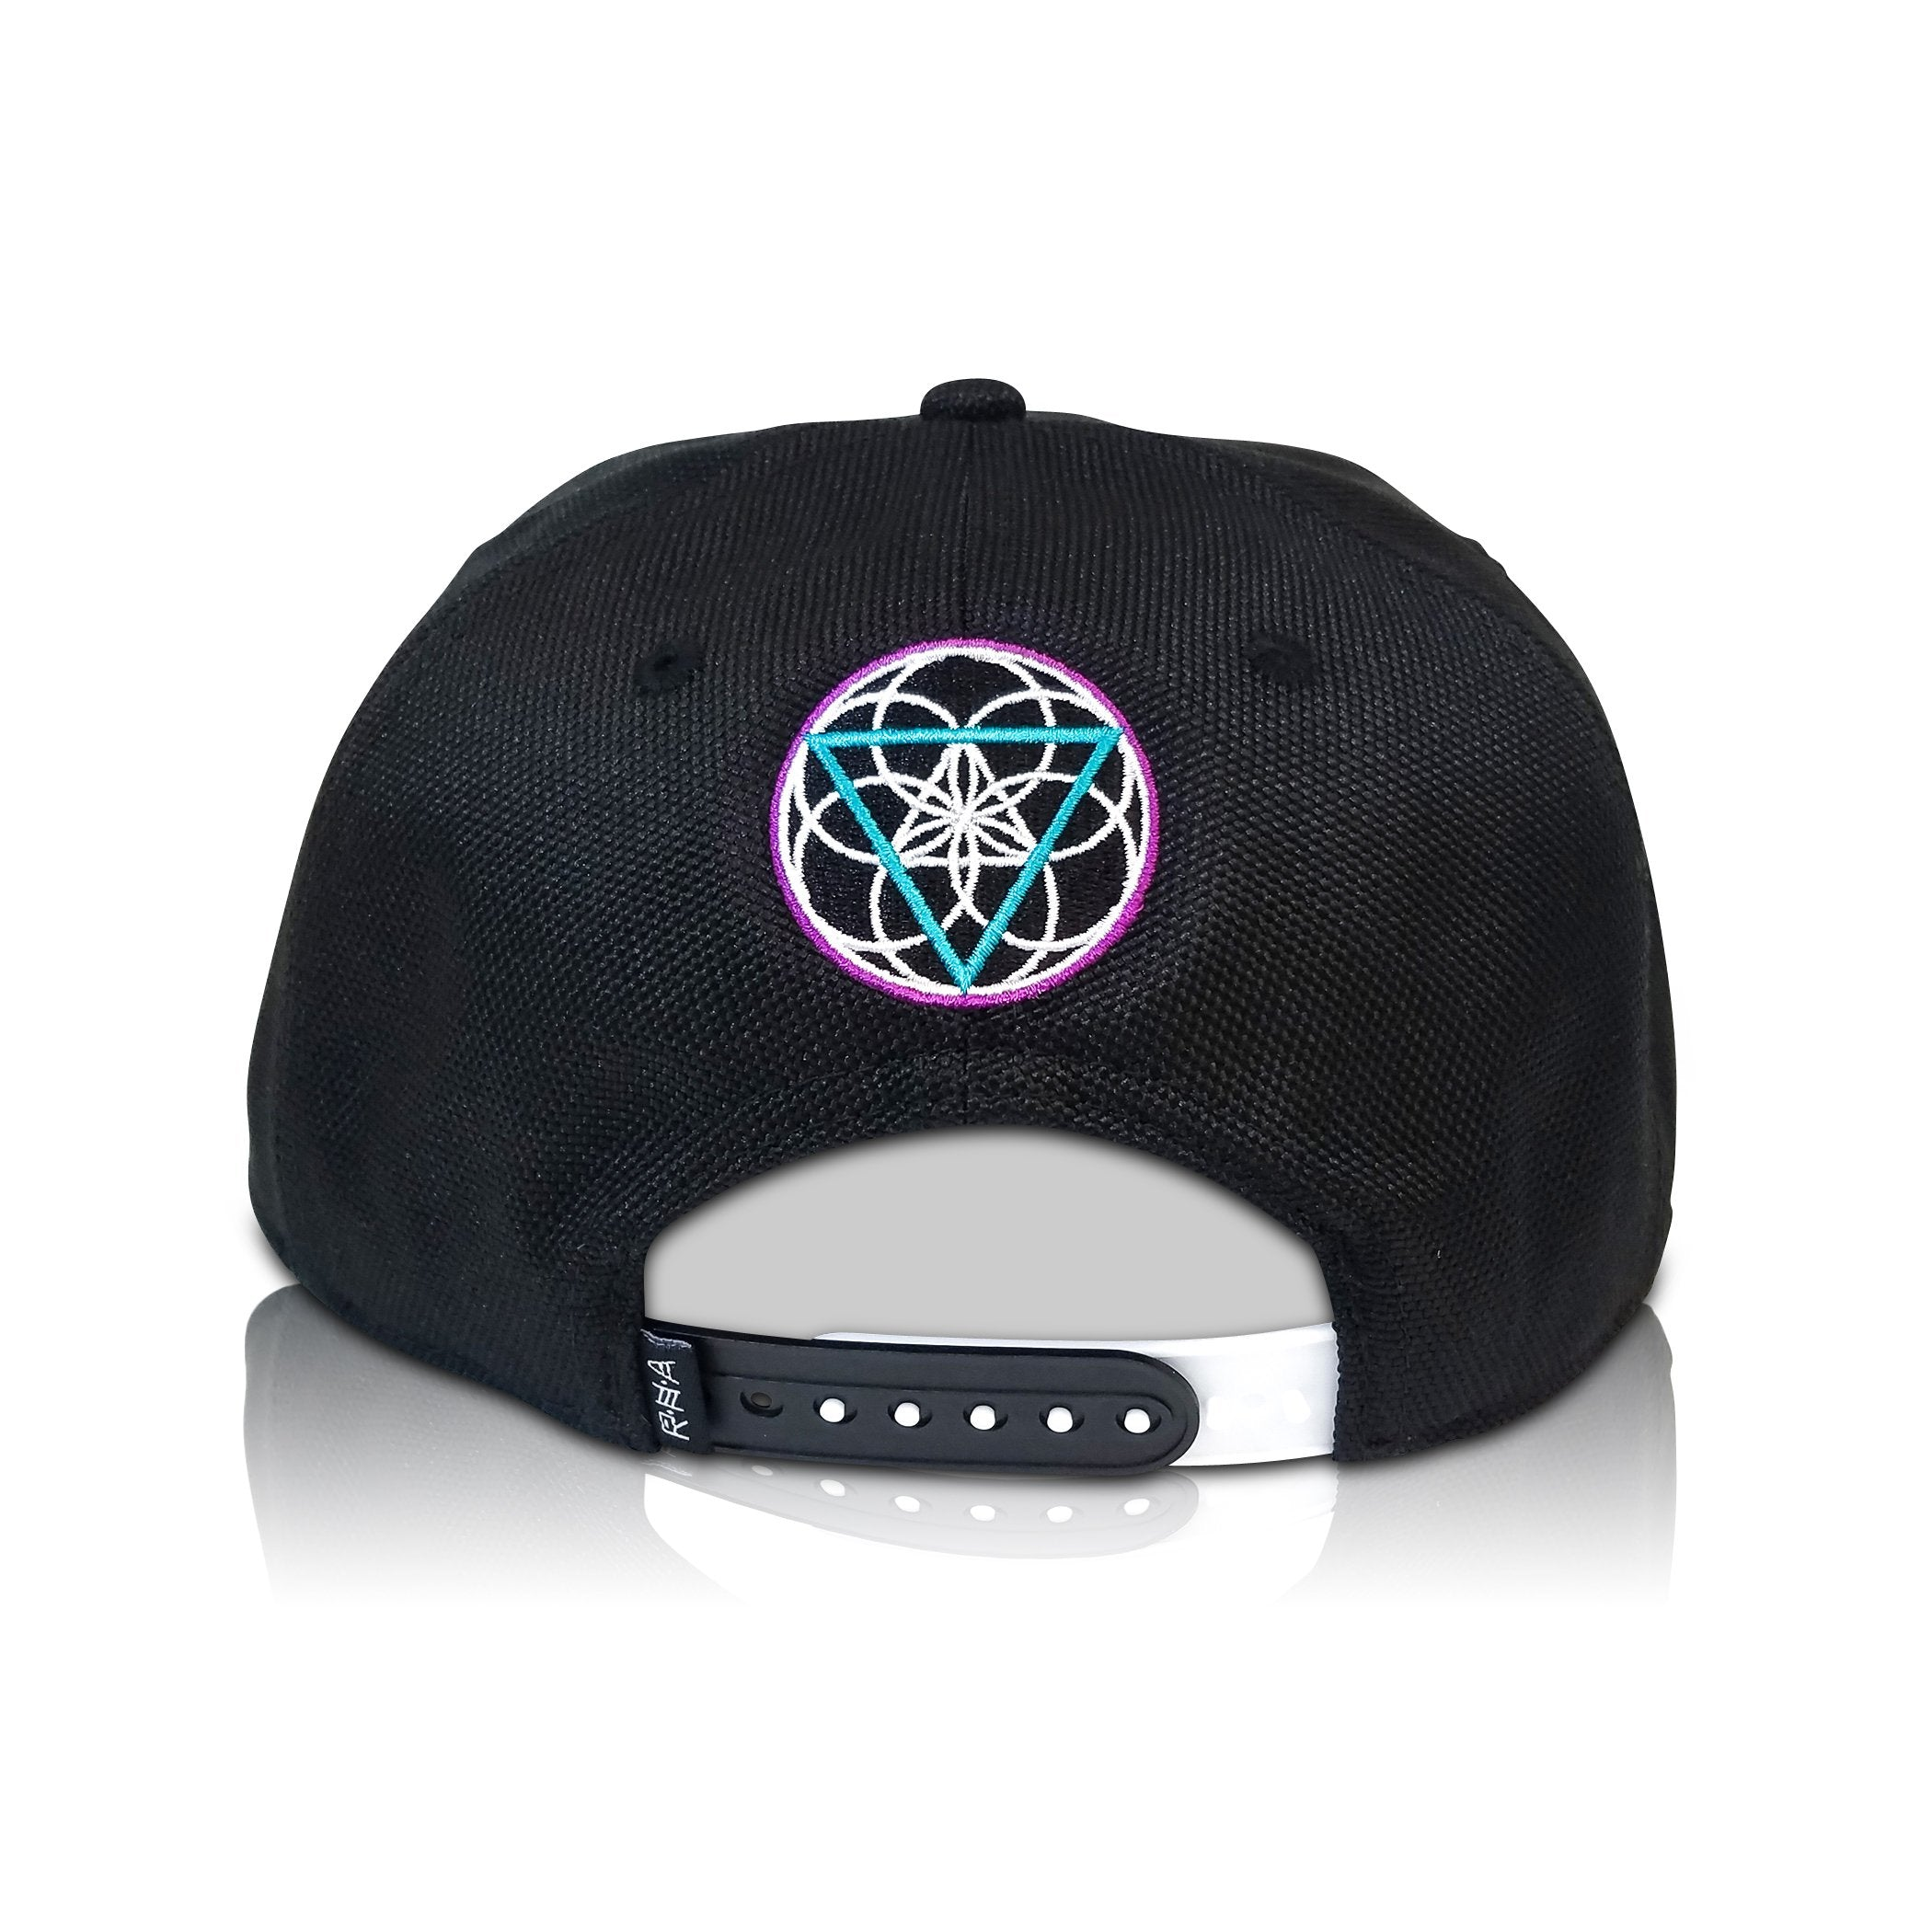 I AM V1 // CROWN // Hemp Snapback w/ Interior Pocket